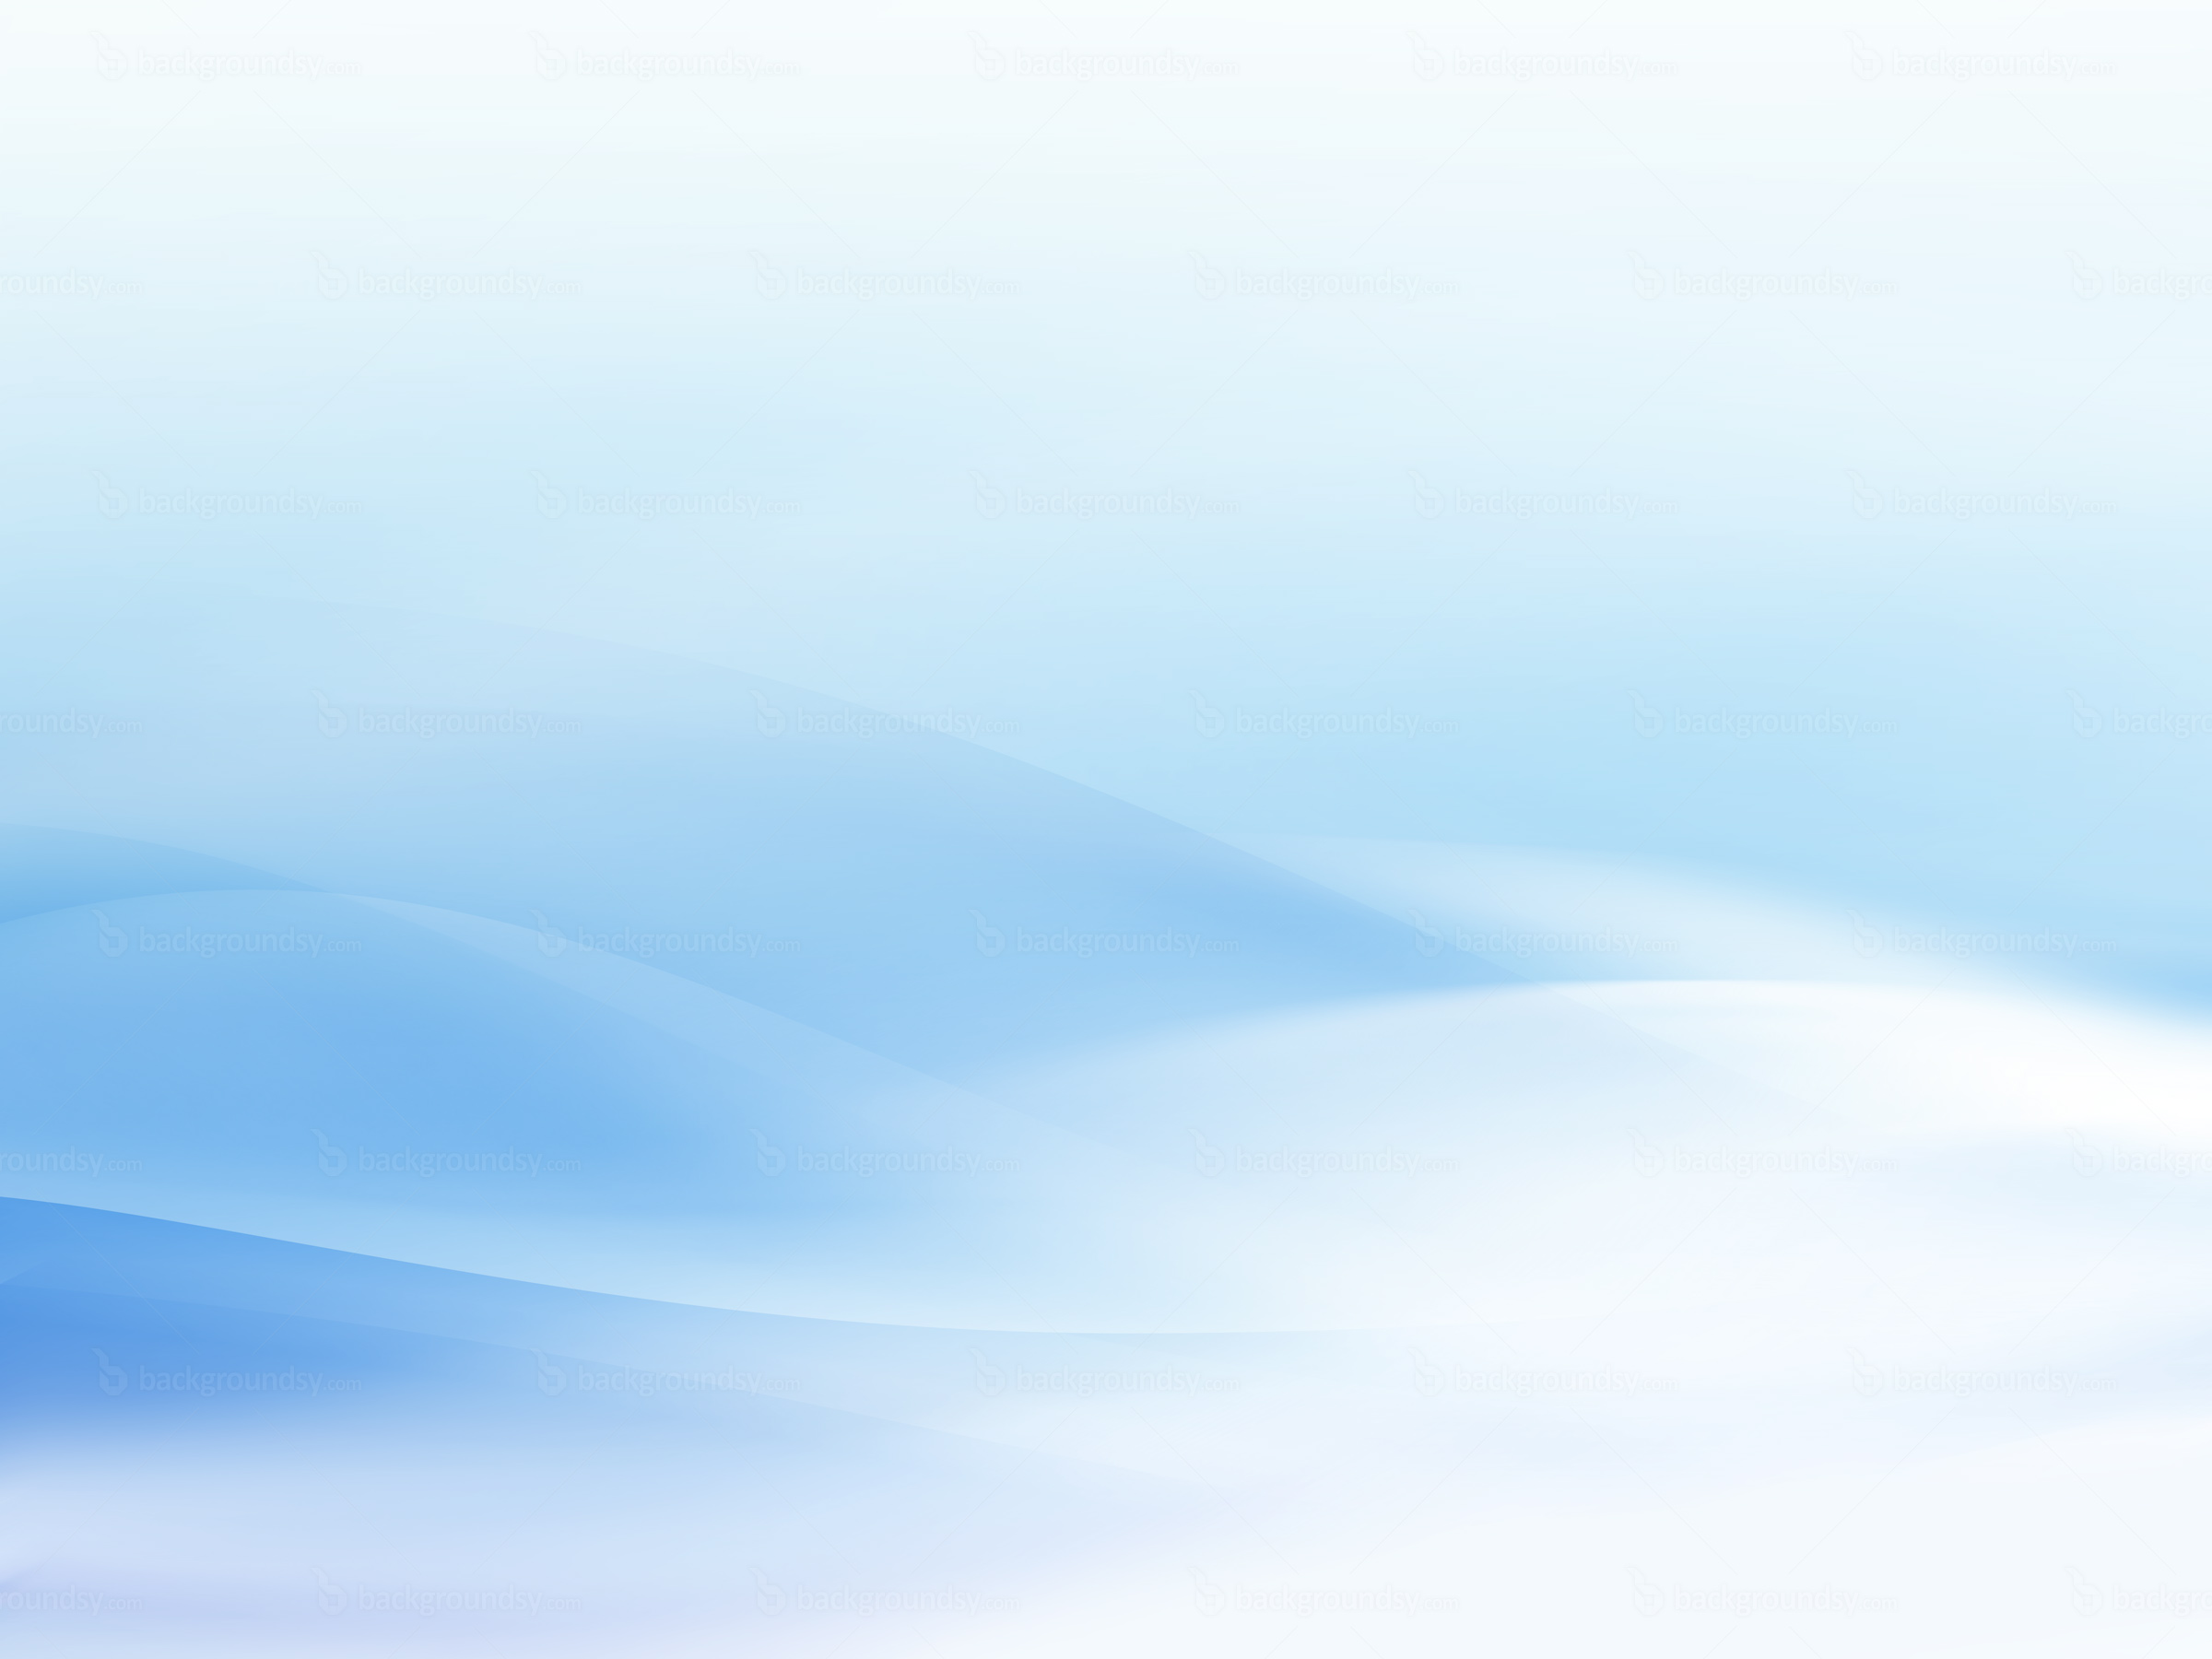 Wallpaper Light Blue   HD Wallpapers and Pictures 2400x1800